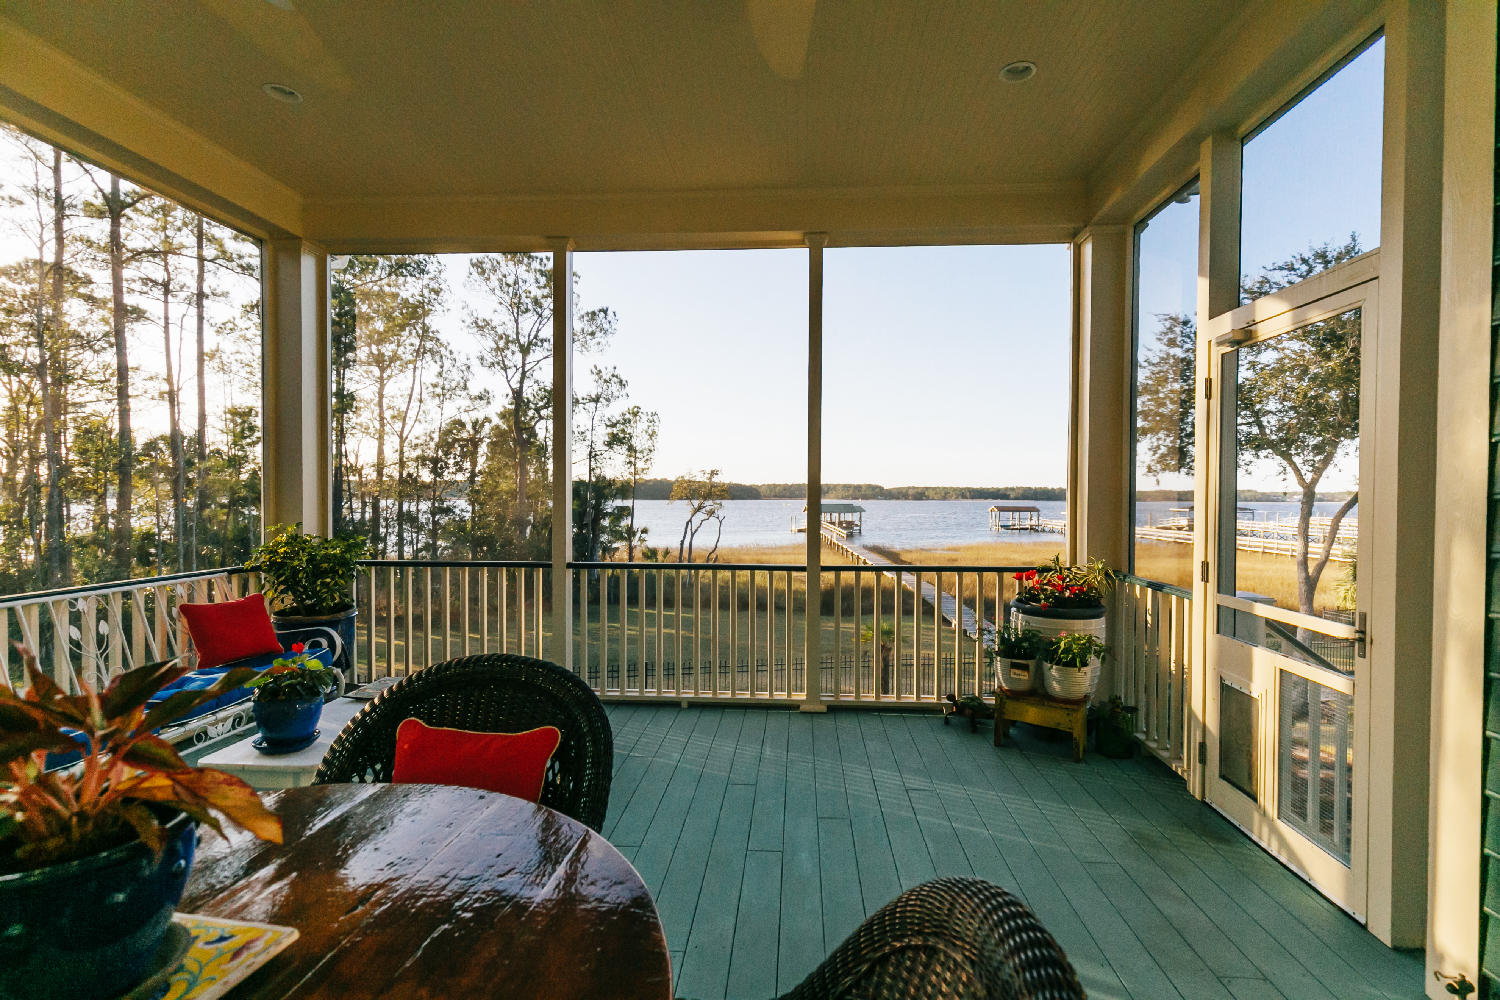 Rivertowne On The Wando Homes For Sale - 2212 Hartfords Bluff, Mount Pleasant, SC - 54